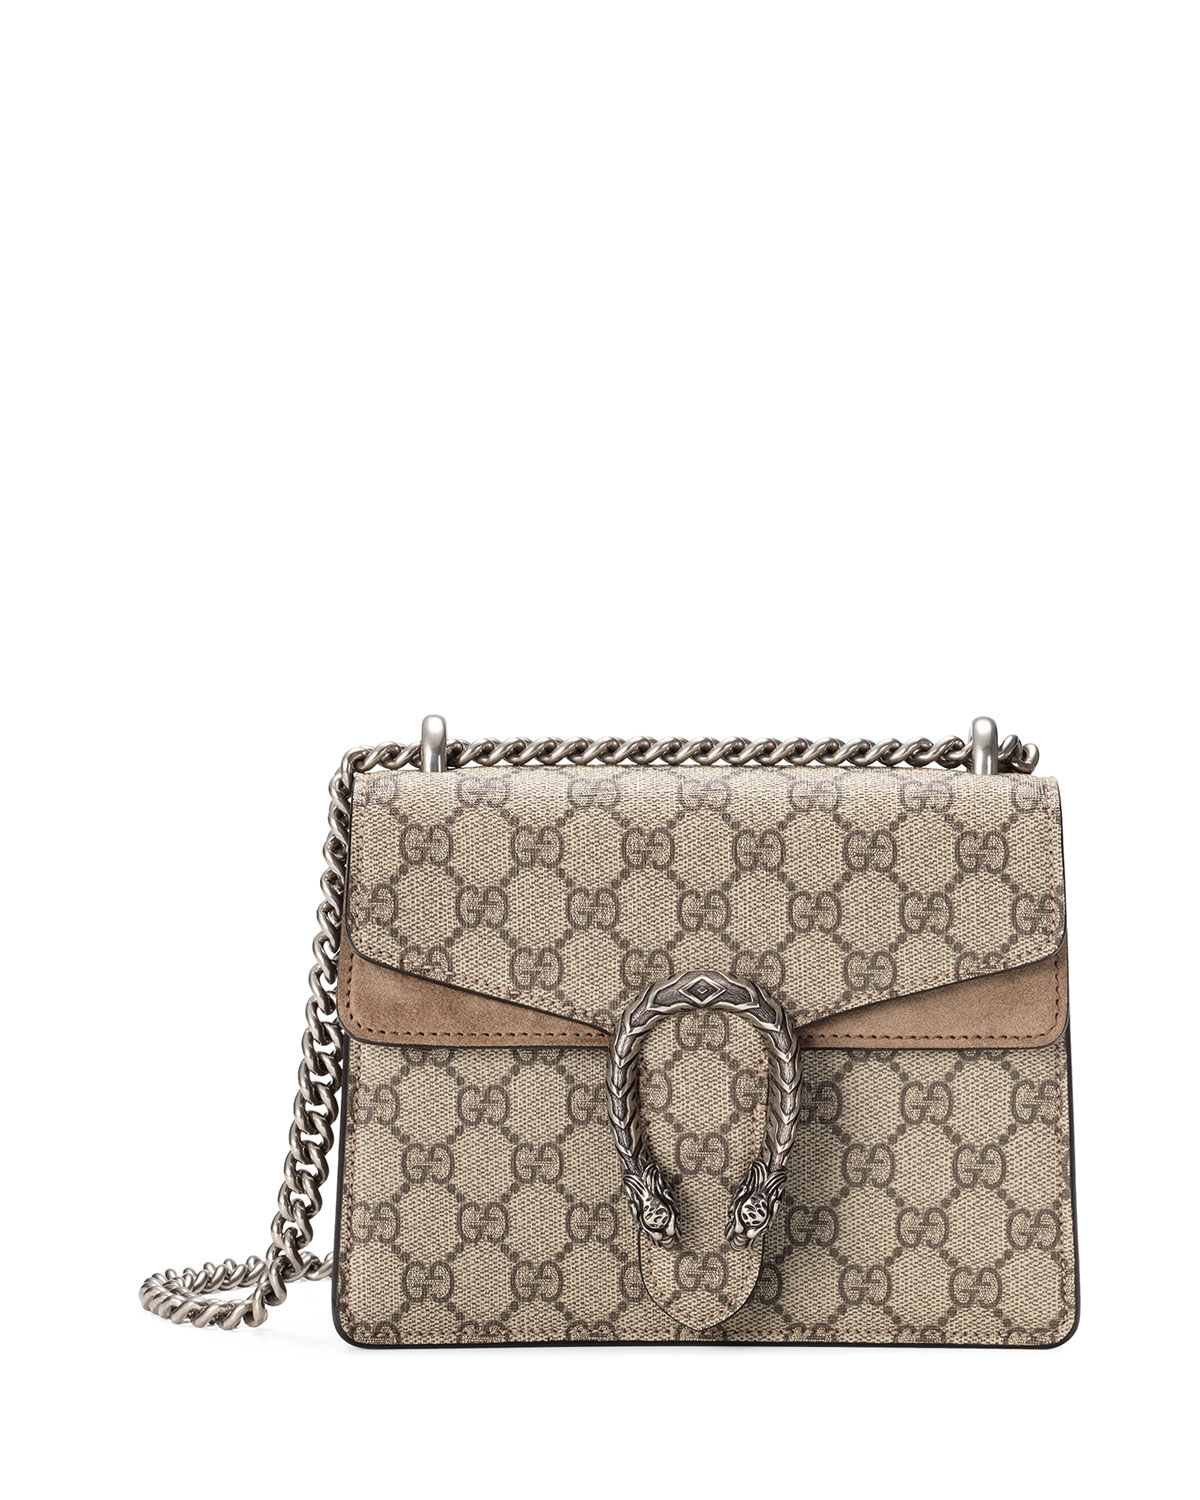 8121c7c4796 Gucci Mini Dionysus GG Supreme Shoulder Bag